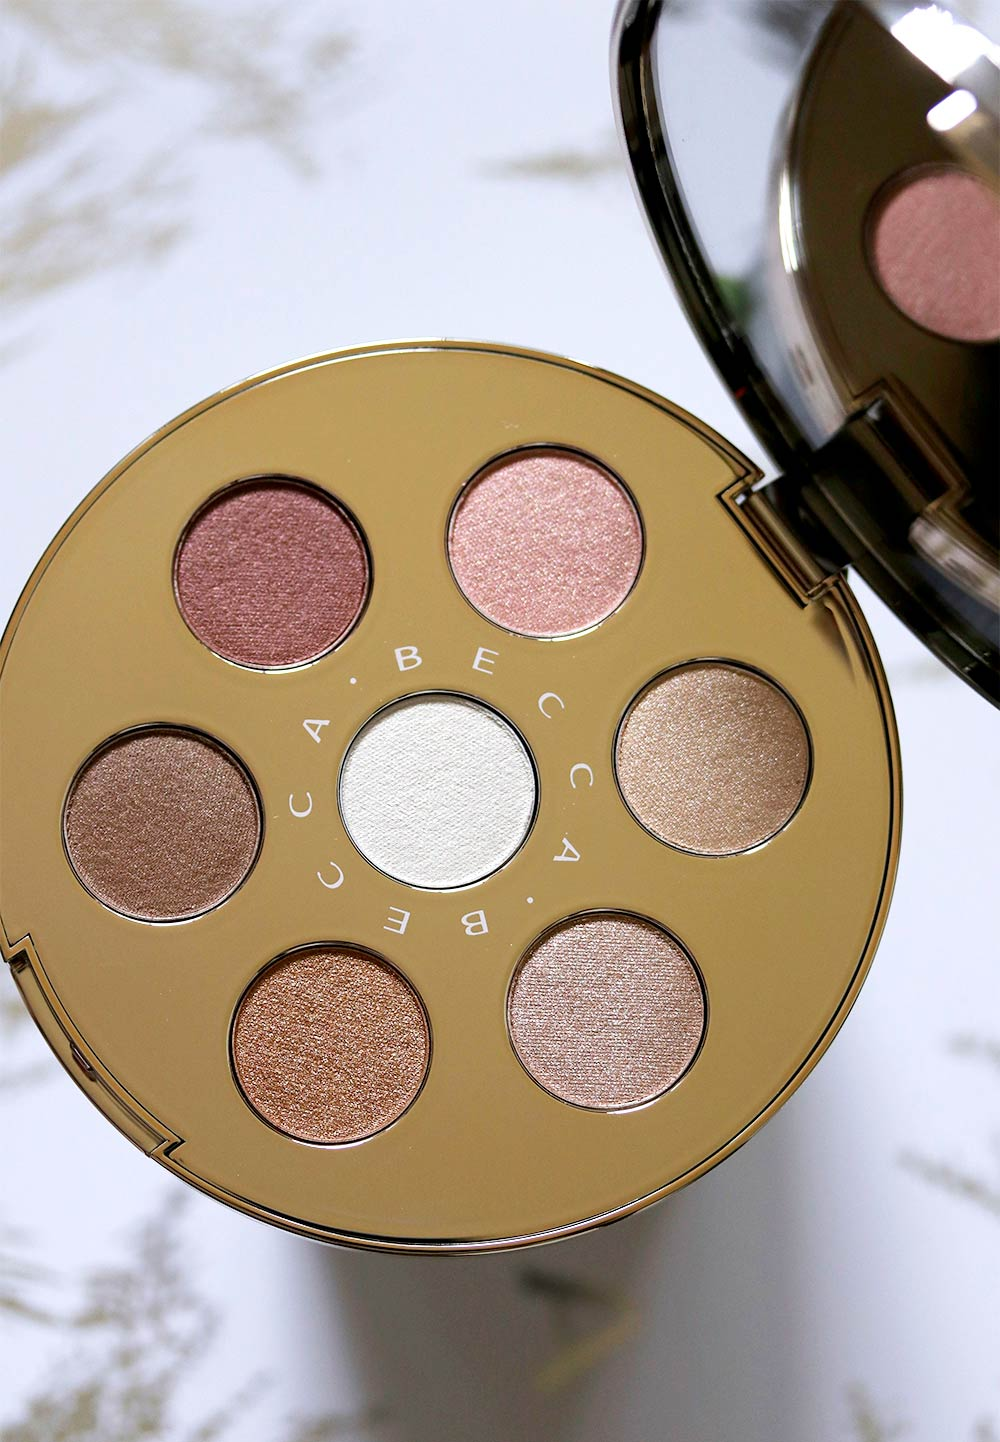 becca eye lights palette open